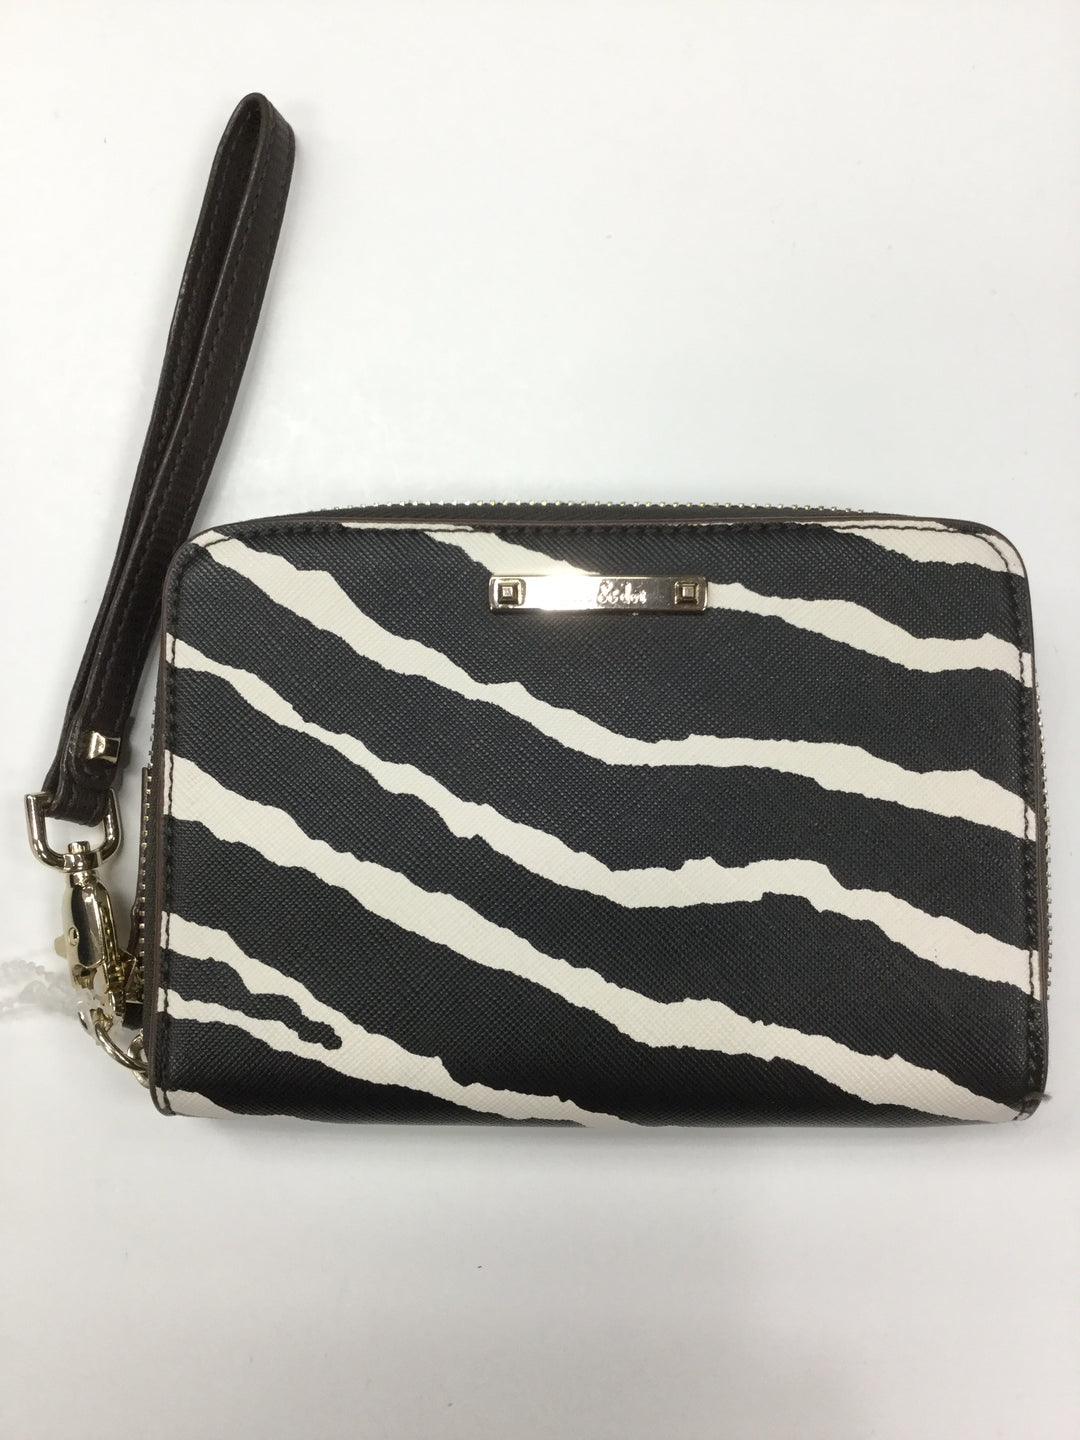 Primary Photo - BRAND: STELLA AND DOT <BR>STYLE: WRISTLET<BR>COLOR: ZEBRA PRINT <BR>SIZE: SMALL <BR>SKU: 155-155190-1868R<BR>BLACK AND WHITE AND BROWN